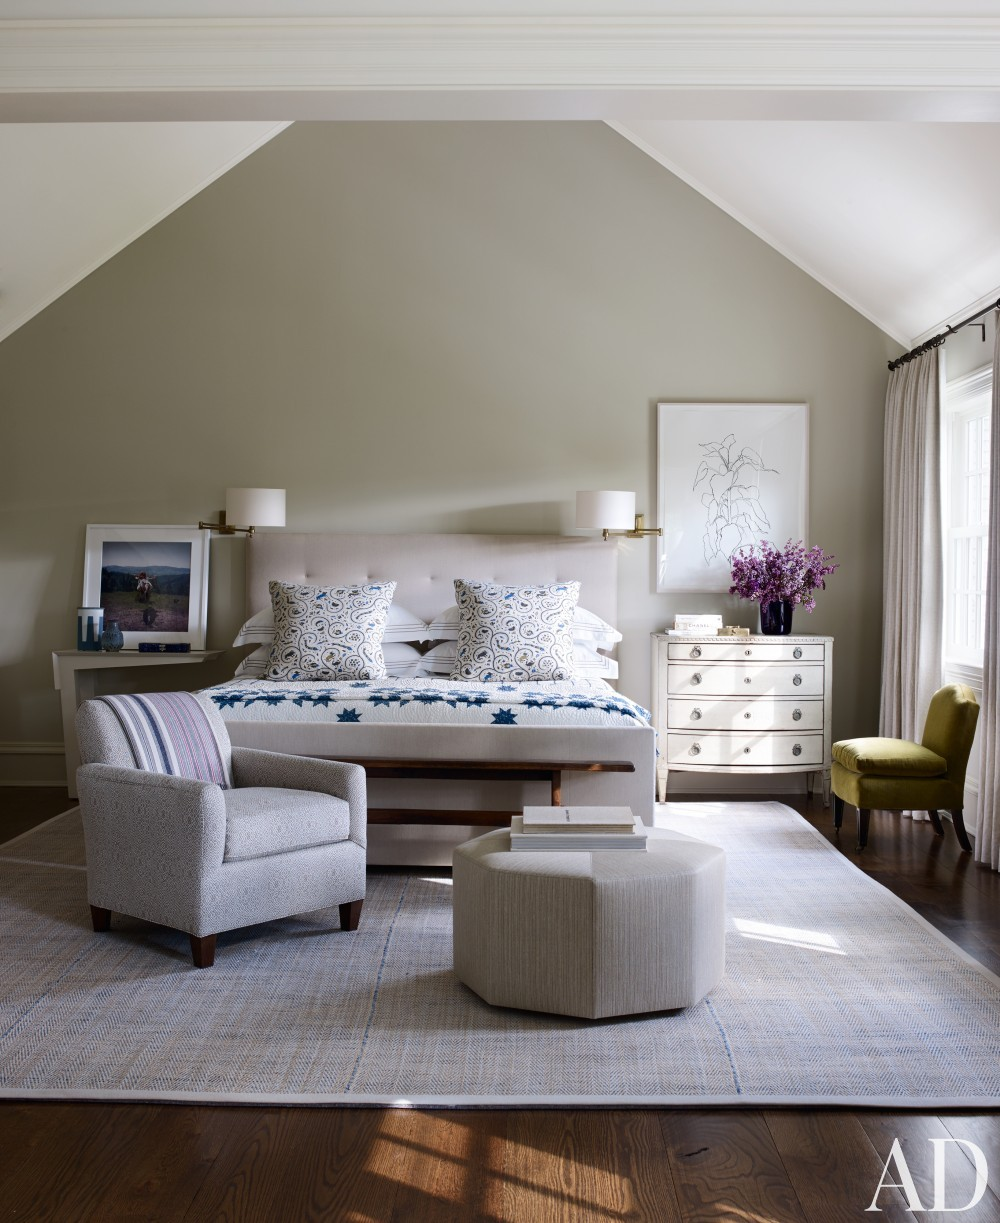 Bedroom by Mark Cunningham in Northwestern Connecticut